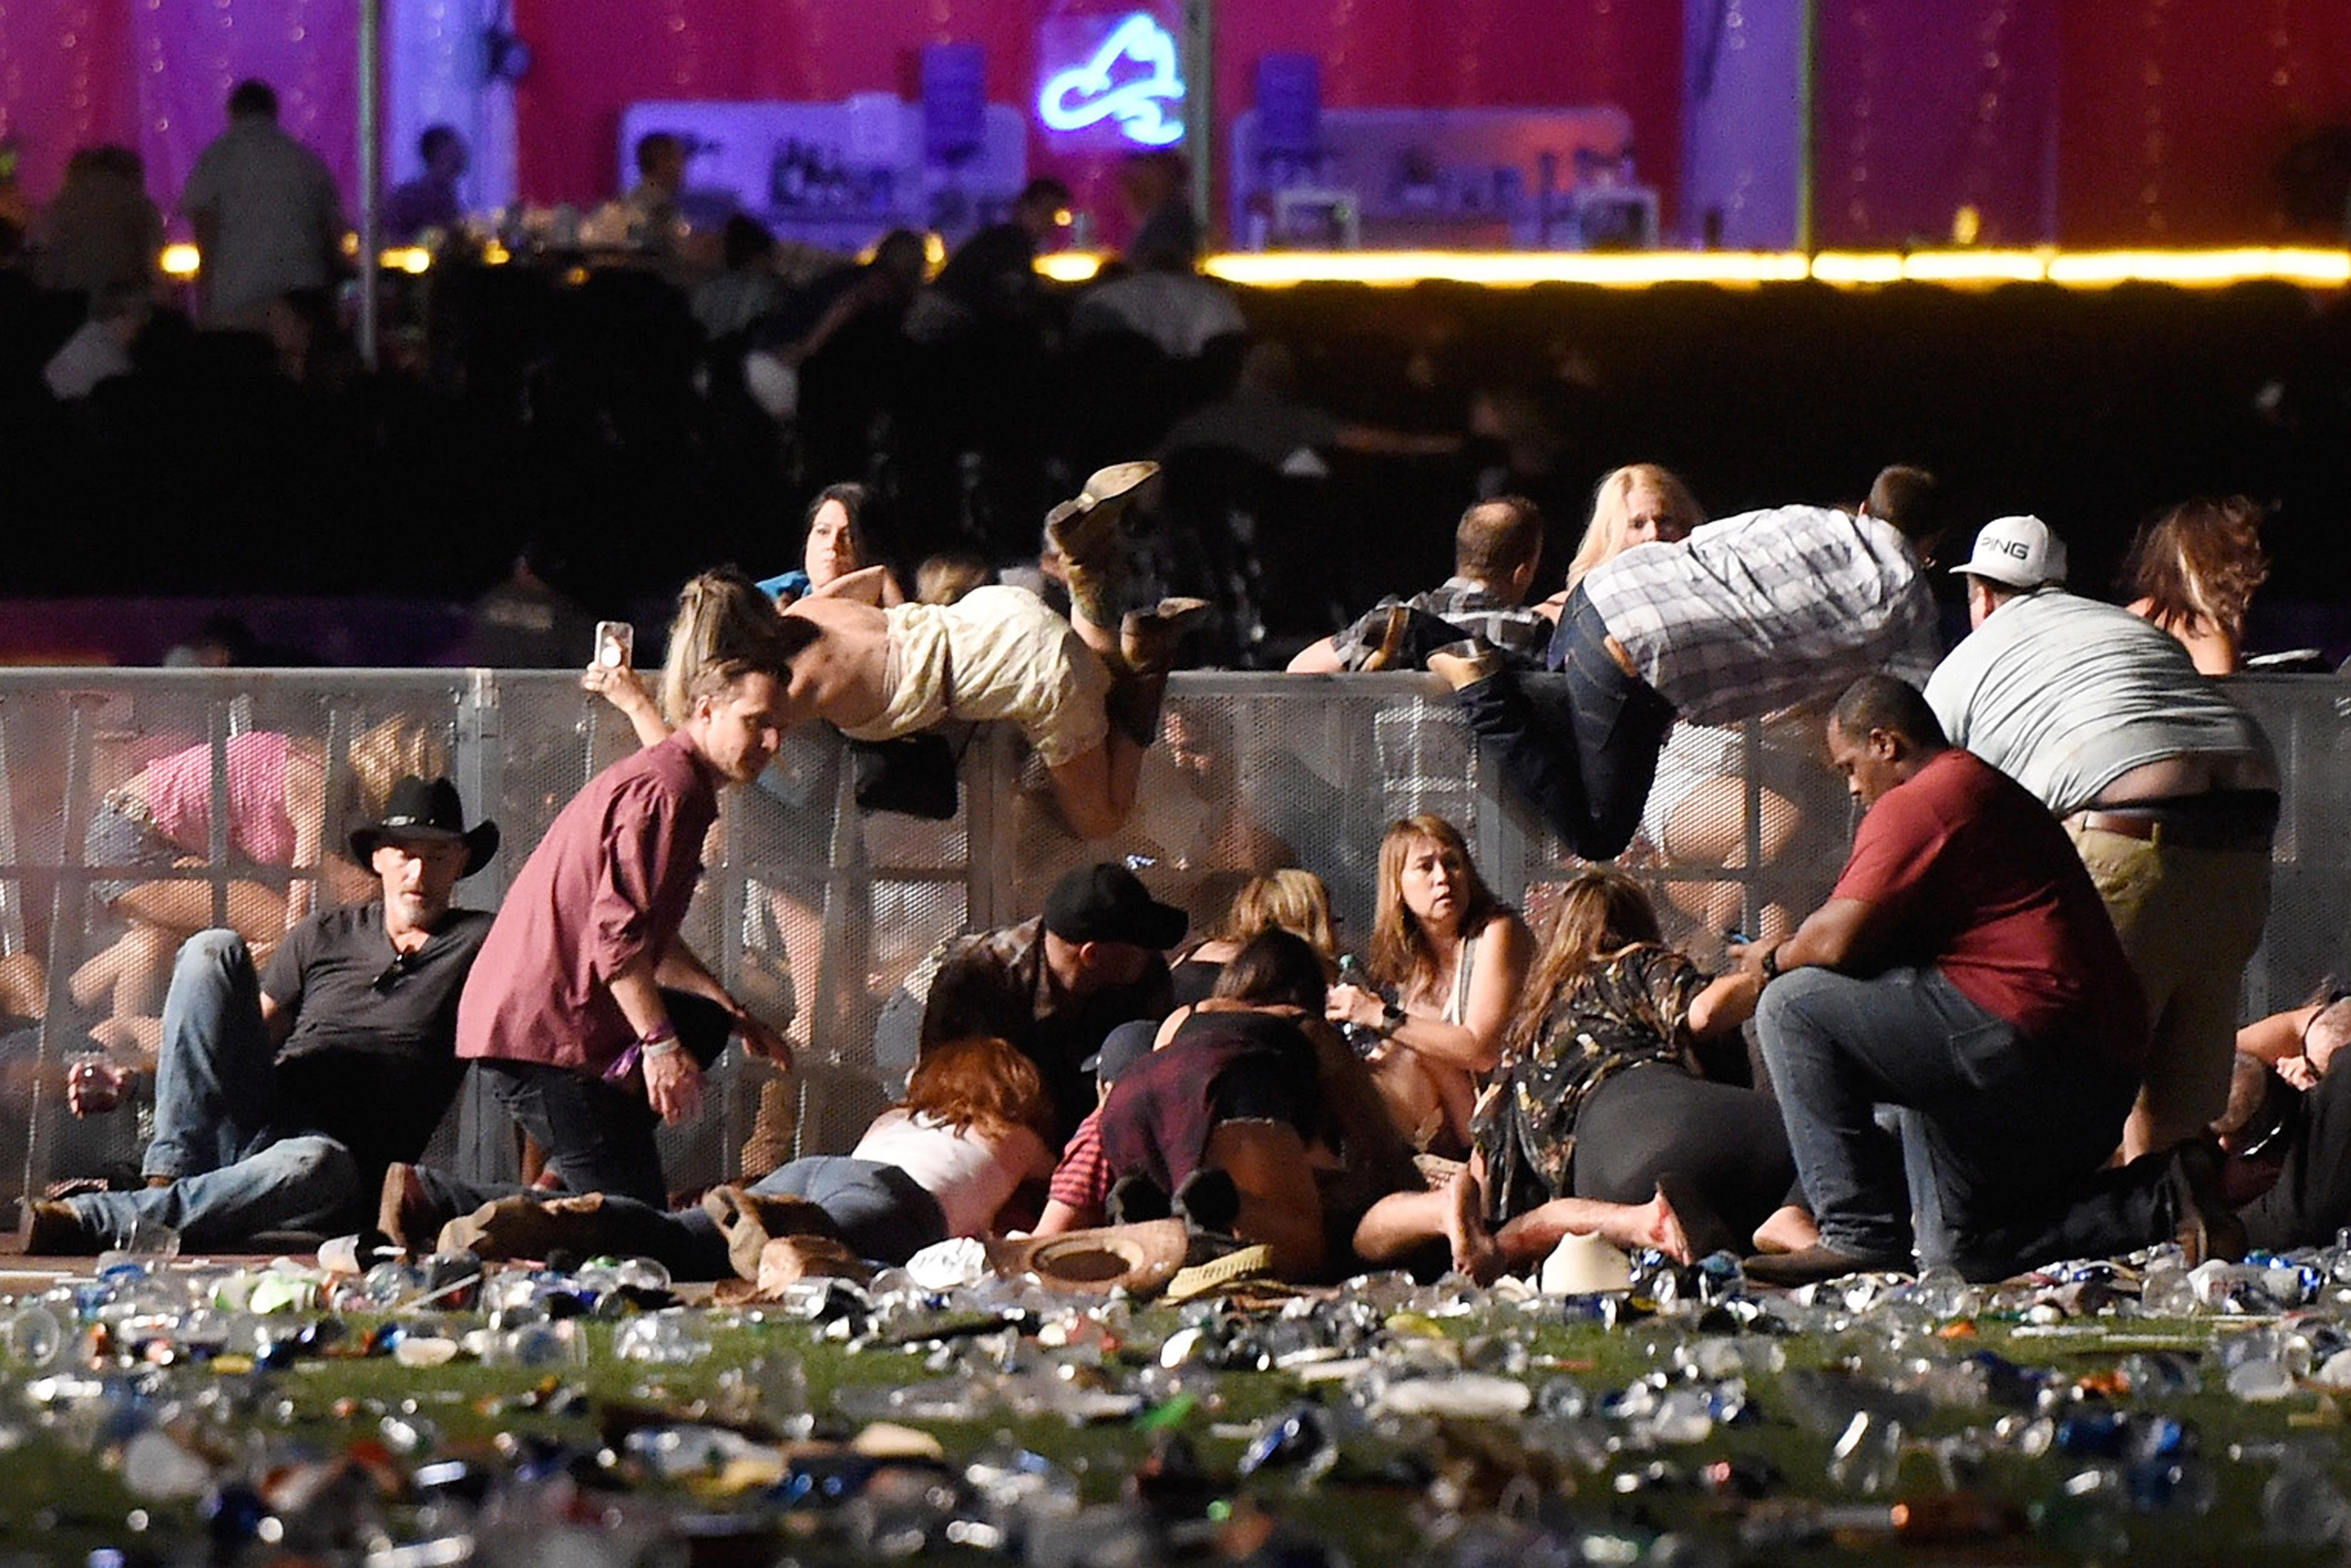 Music fans duck and cover at the Route 91 Harvest country music festival. (Photo: David Becker/Getty Images)